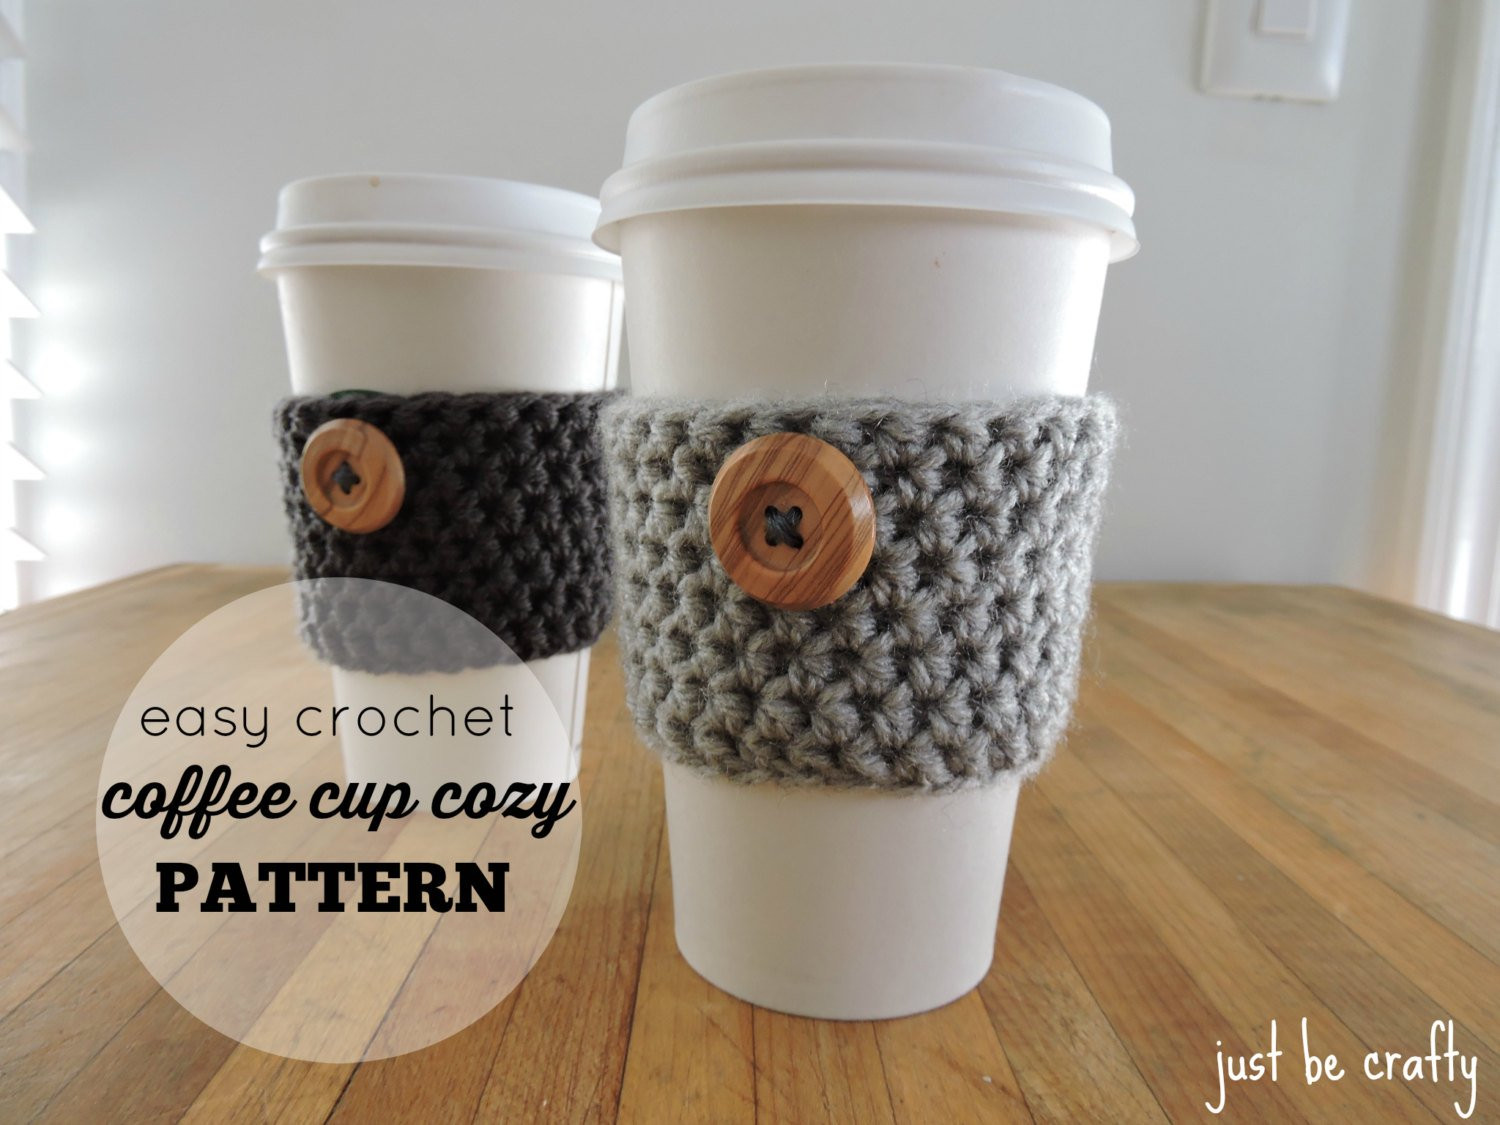 Crochet Coffee Cup Cozy Inspirational Crochet Coffee Cup Cozy Pattern Pdf Download Coffee Cup Cozy Of Crochet Coffee Cup Cozy Inspirational 35 Easy Crochet Patterns